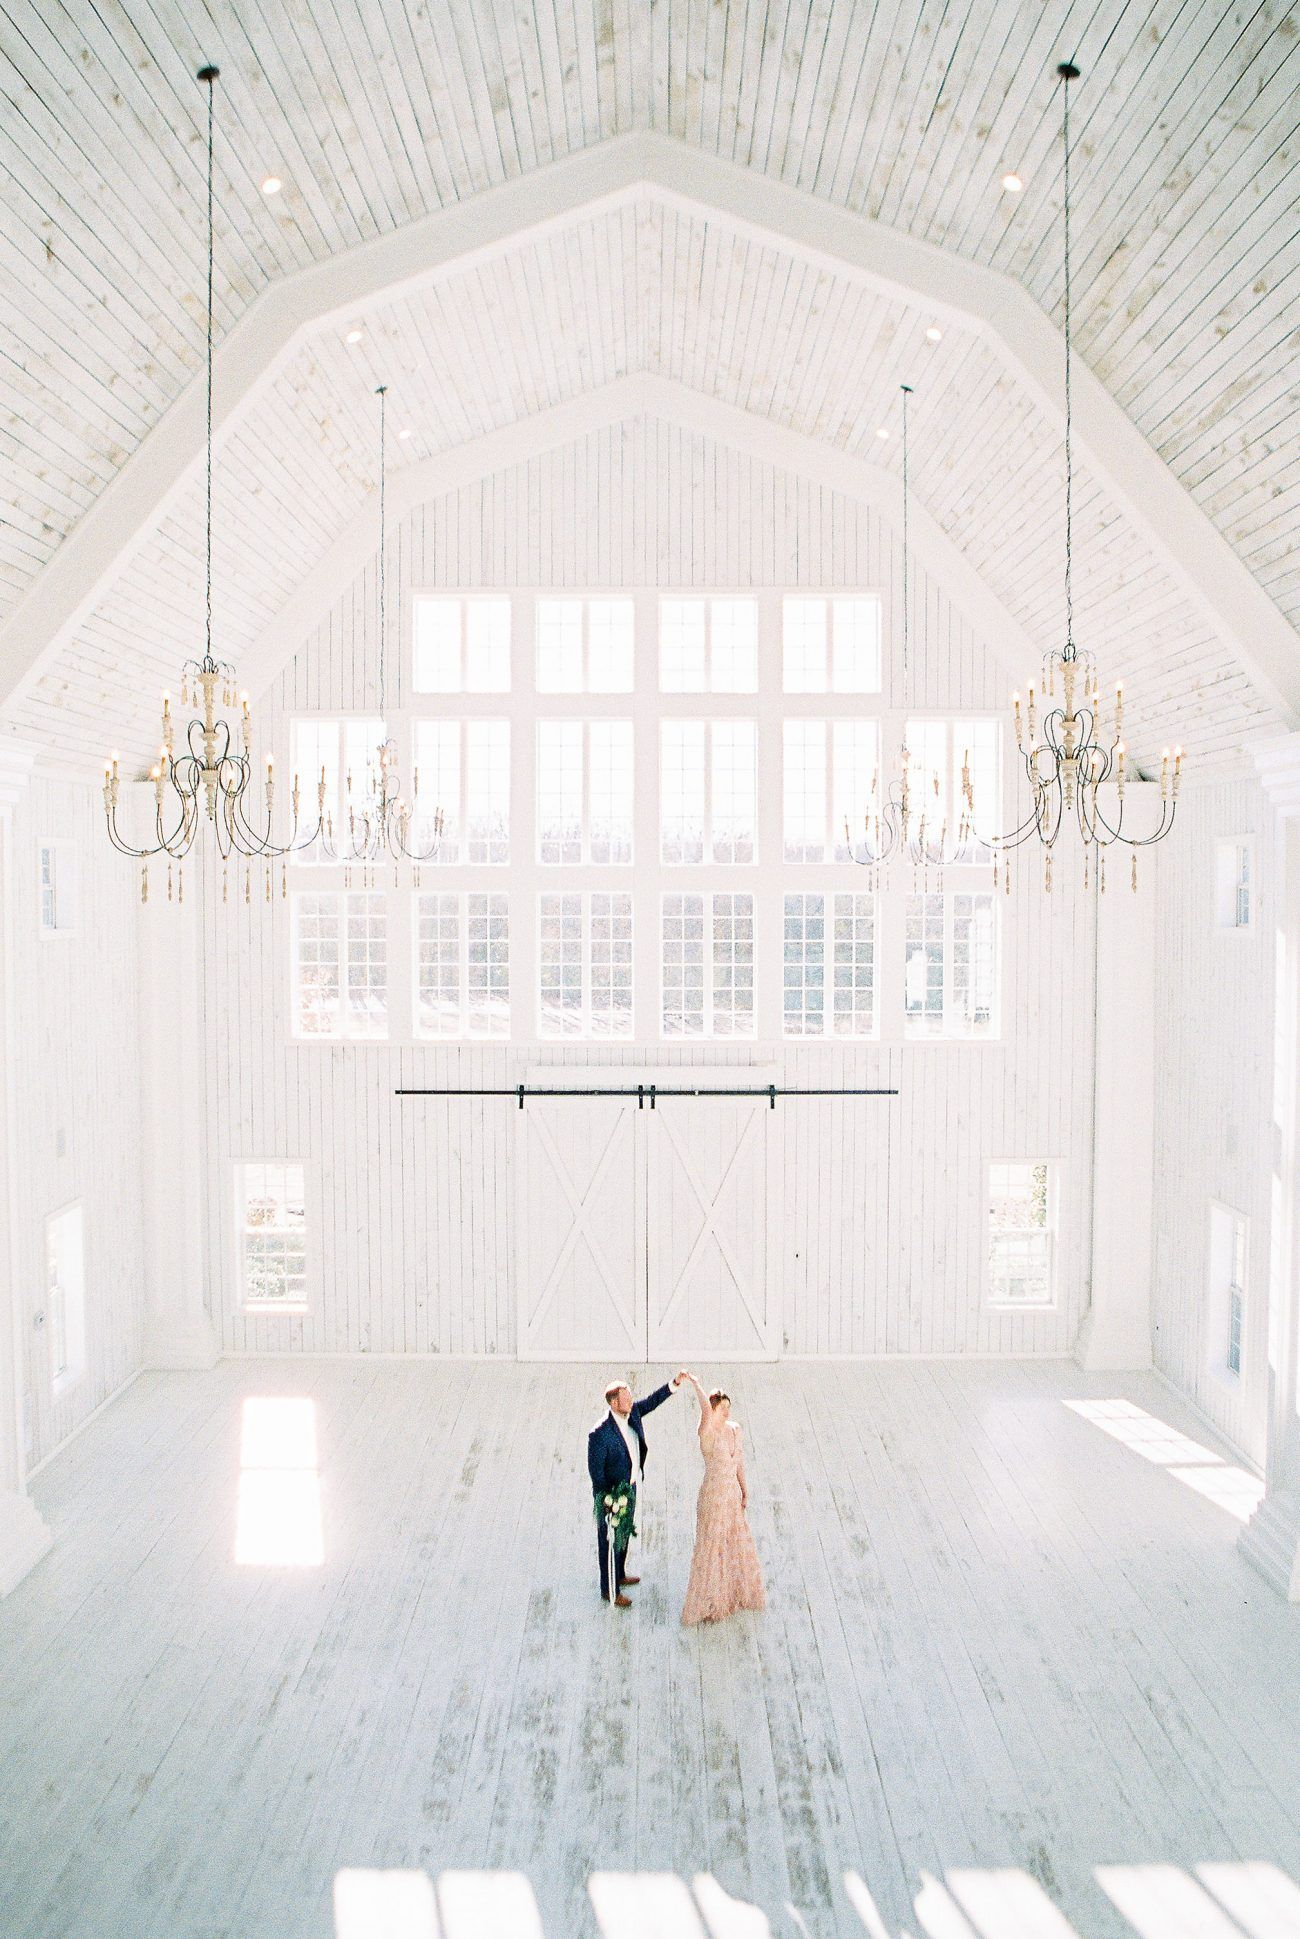 Ashley and Colton Celebrate Their Engagement Surrounded by the Charming Rustic Elegance of The White Sparrow Barn